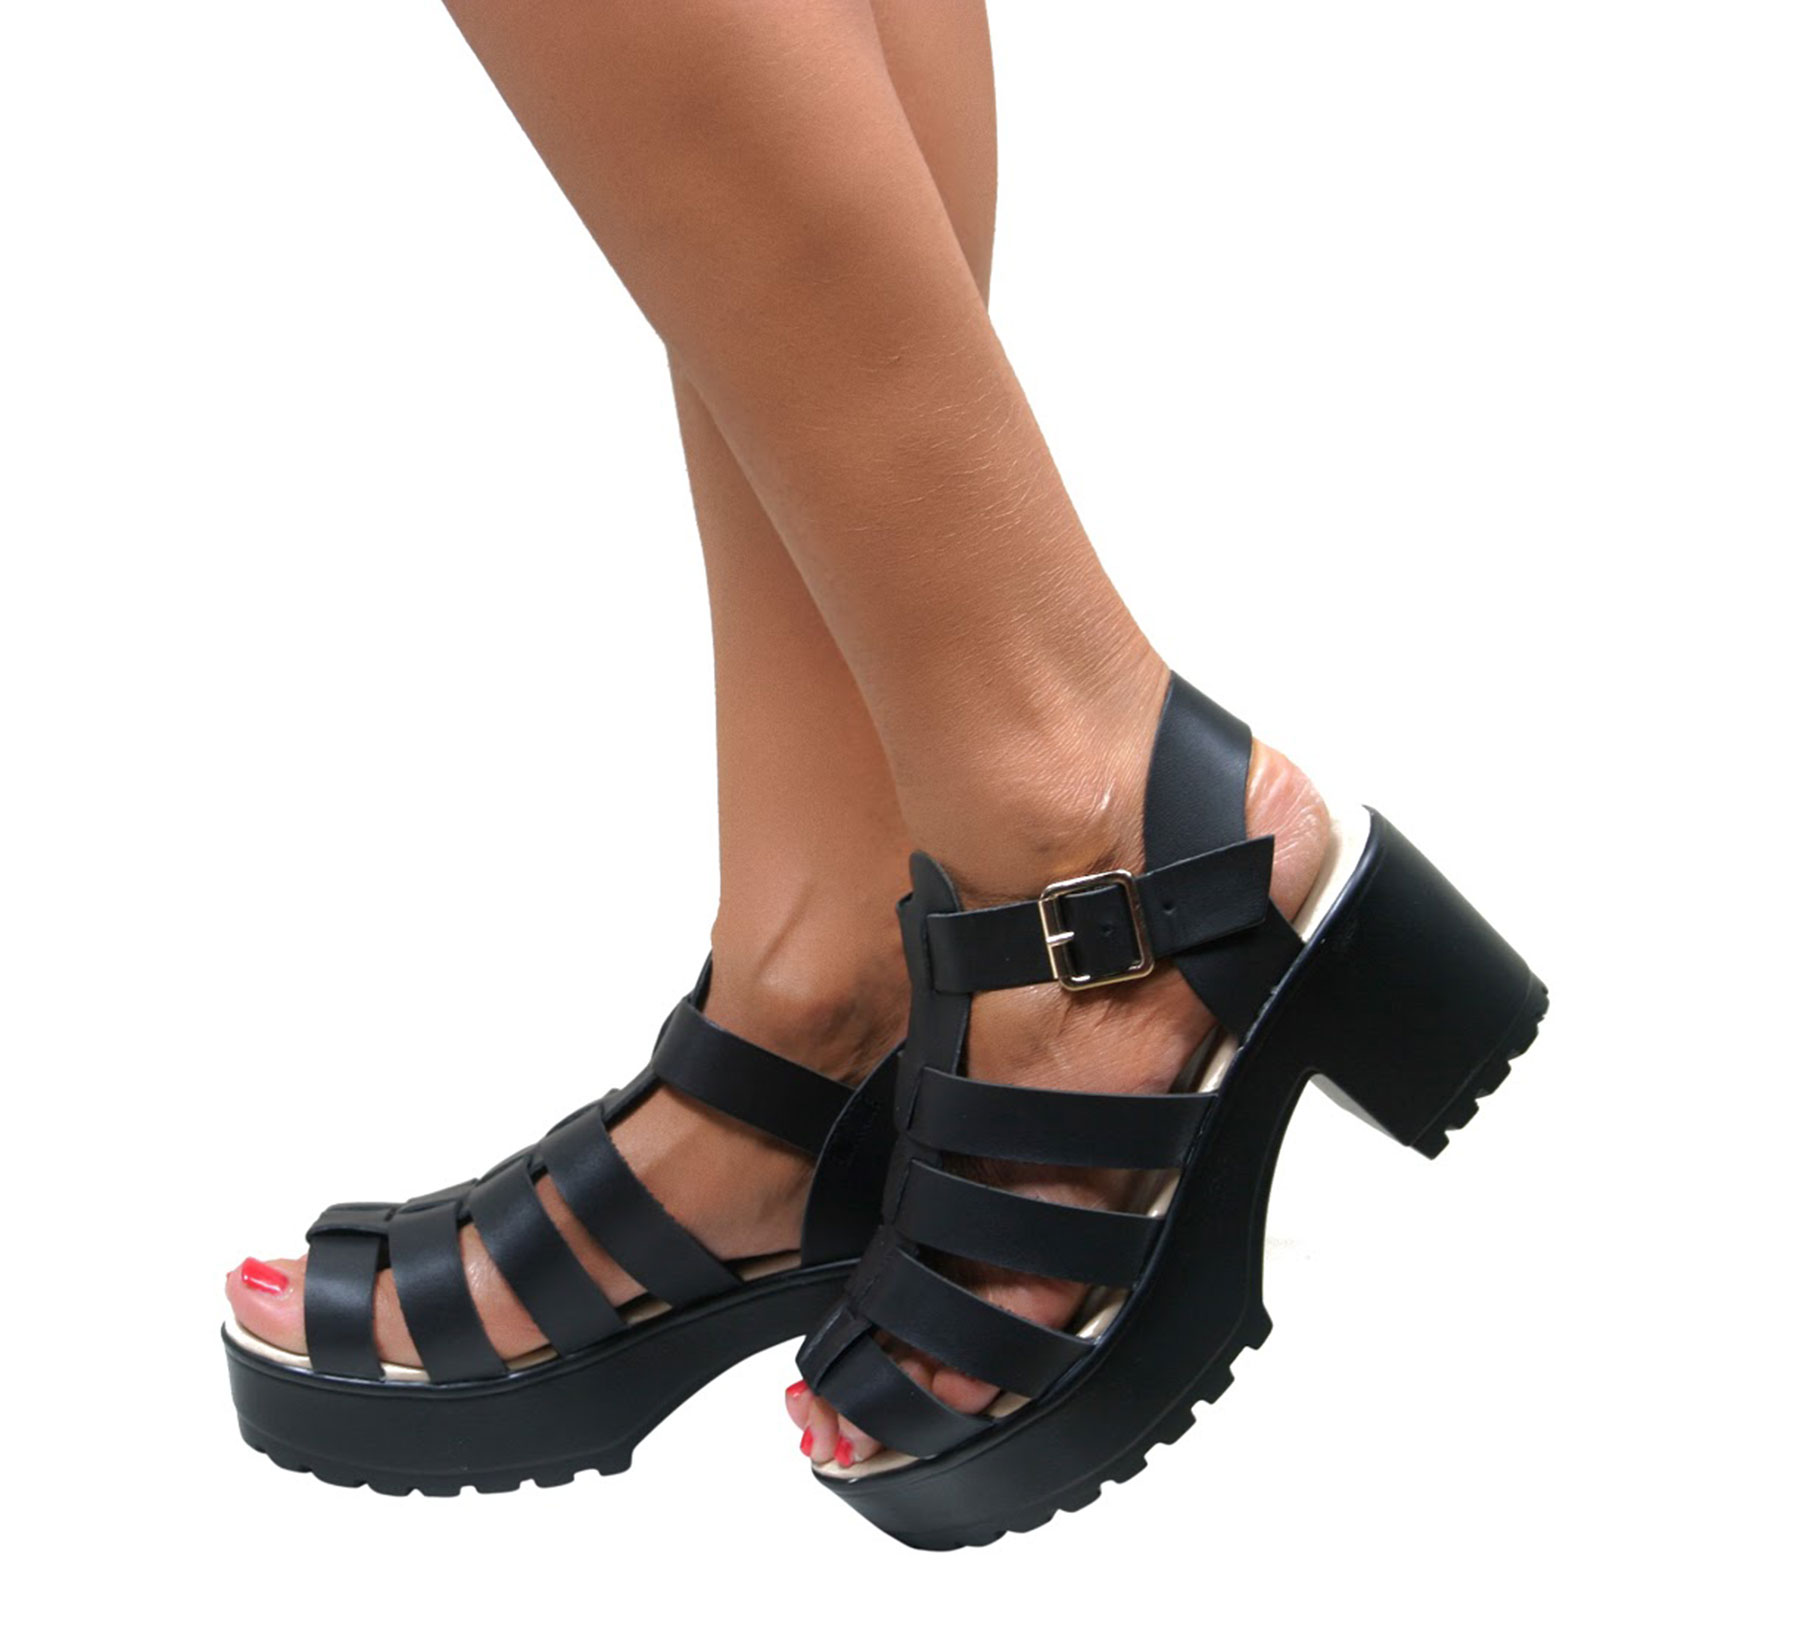 LADIES GLADIATOR CUT OUT PUNK SANDALS CLEATED SOLE CHUNKY BLOCK ...